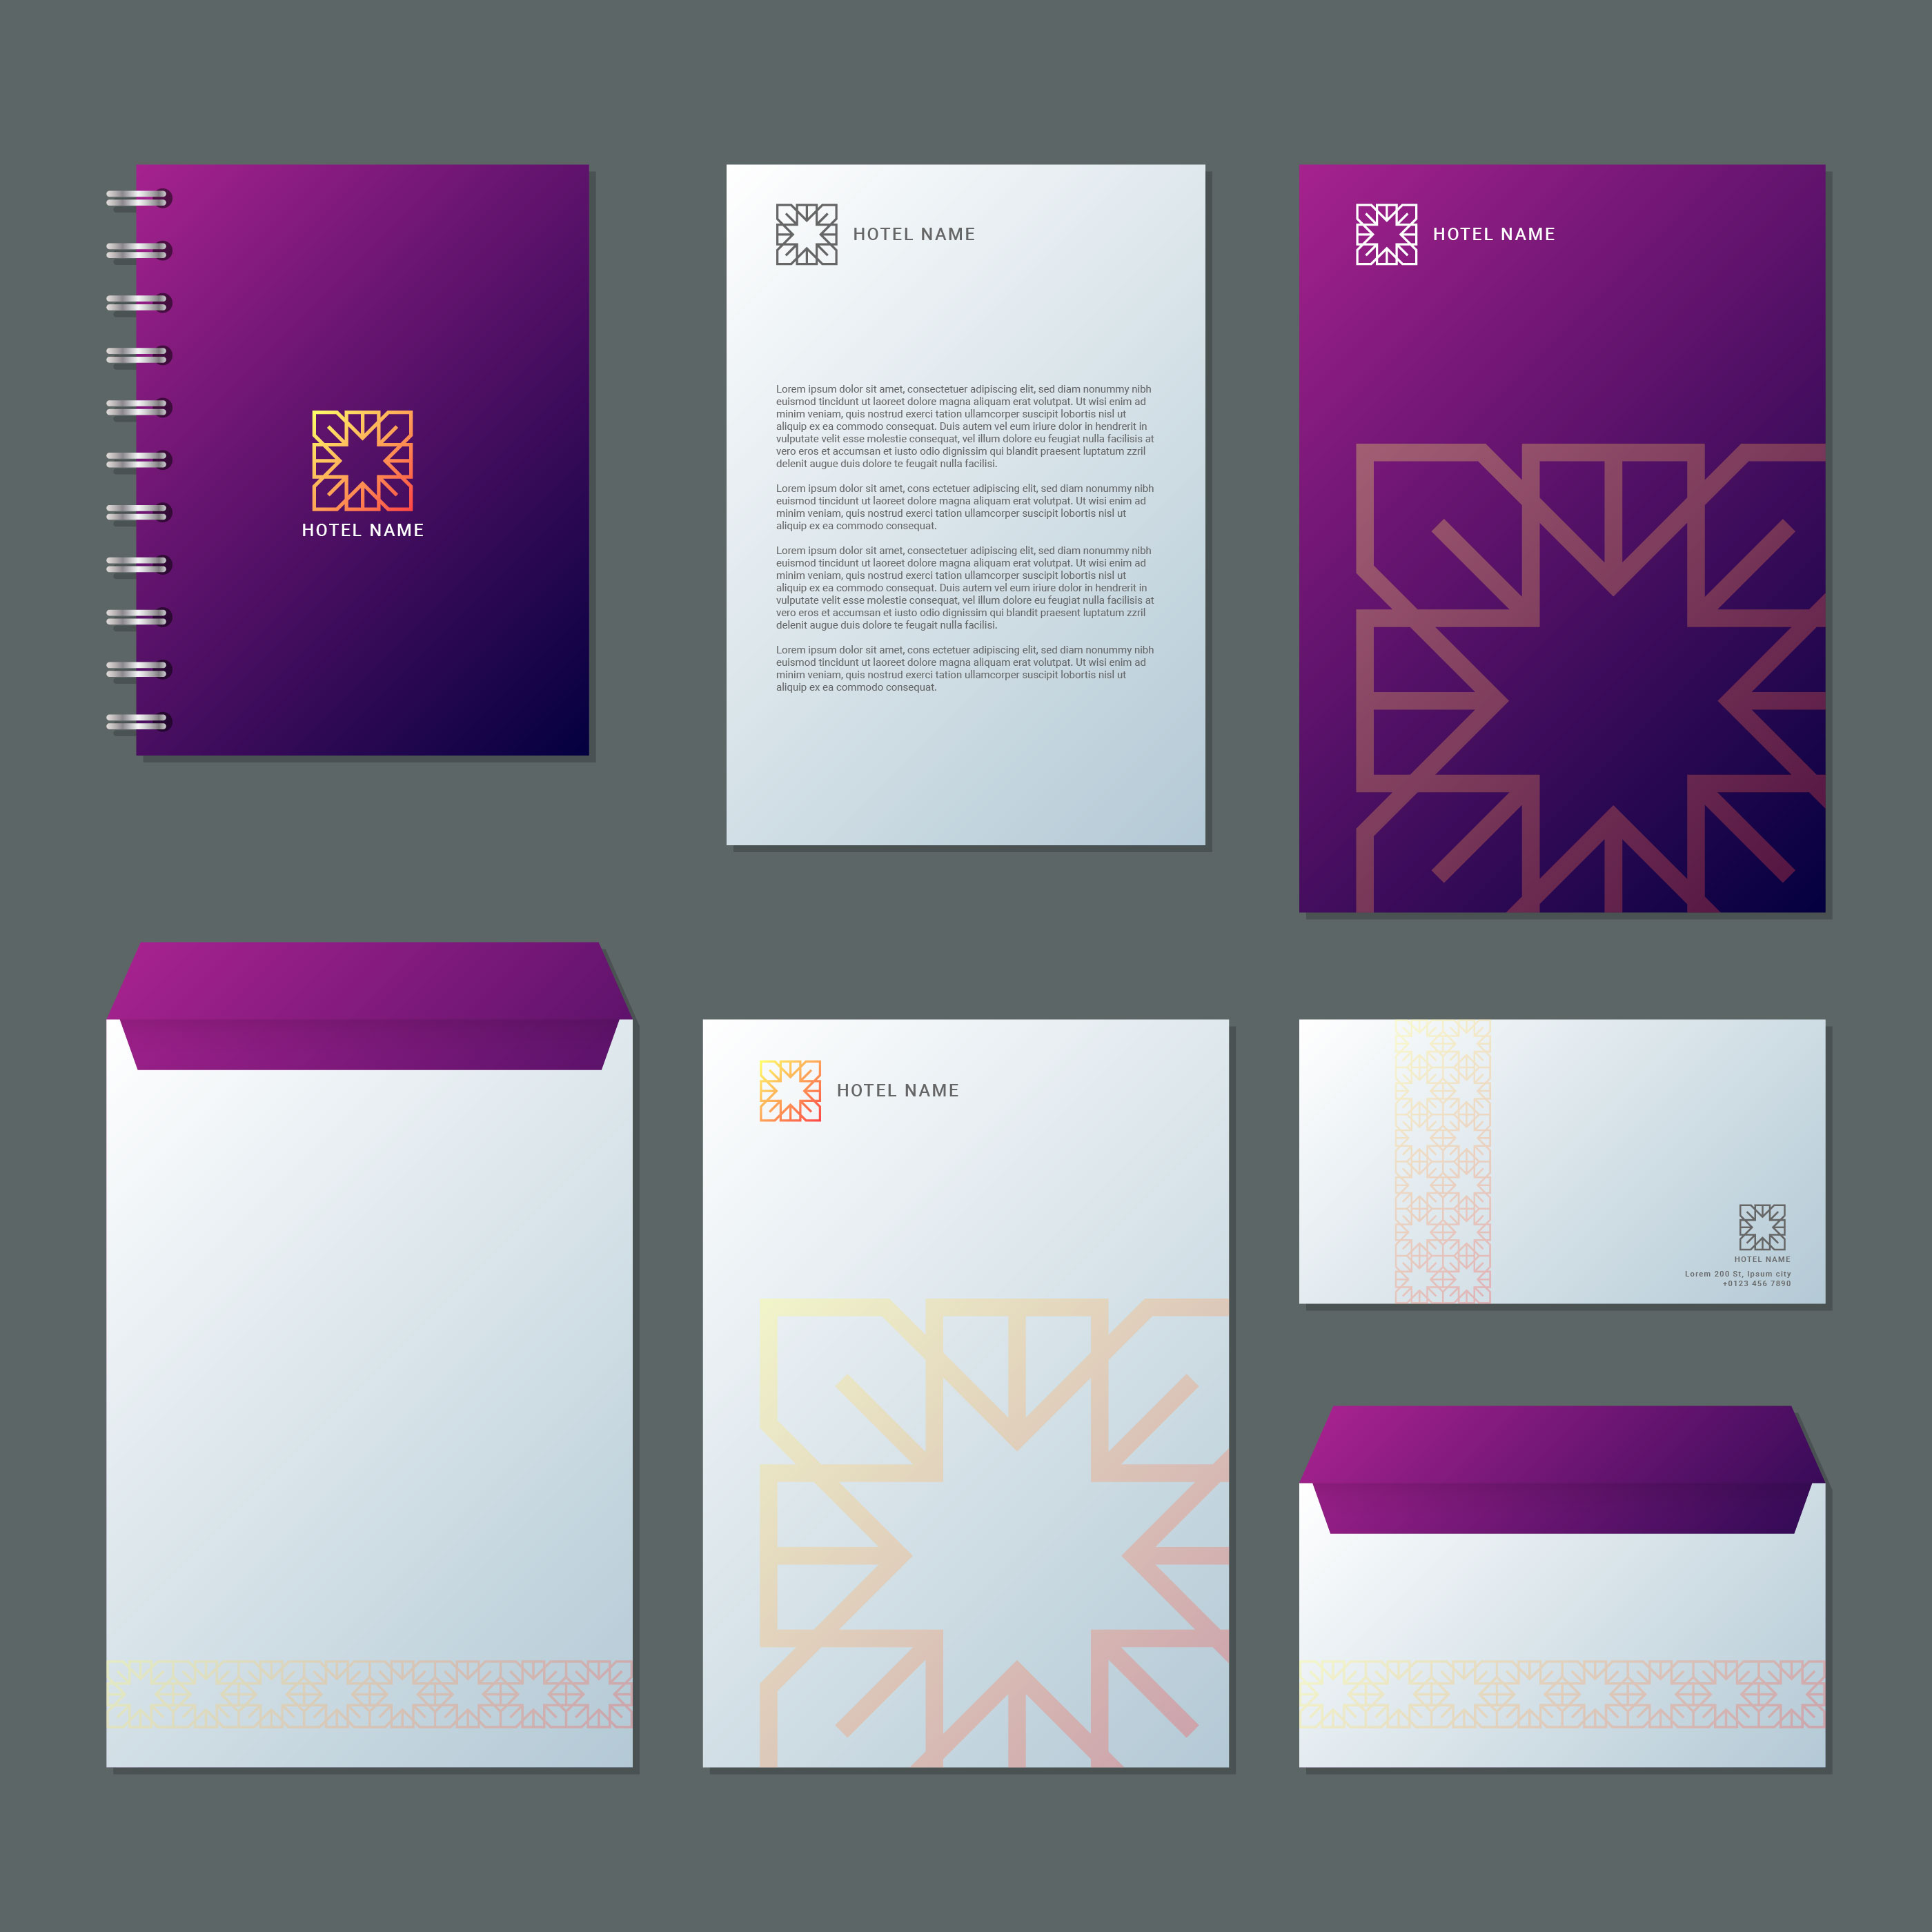 business hotel and resort spa branding identity template